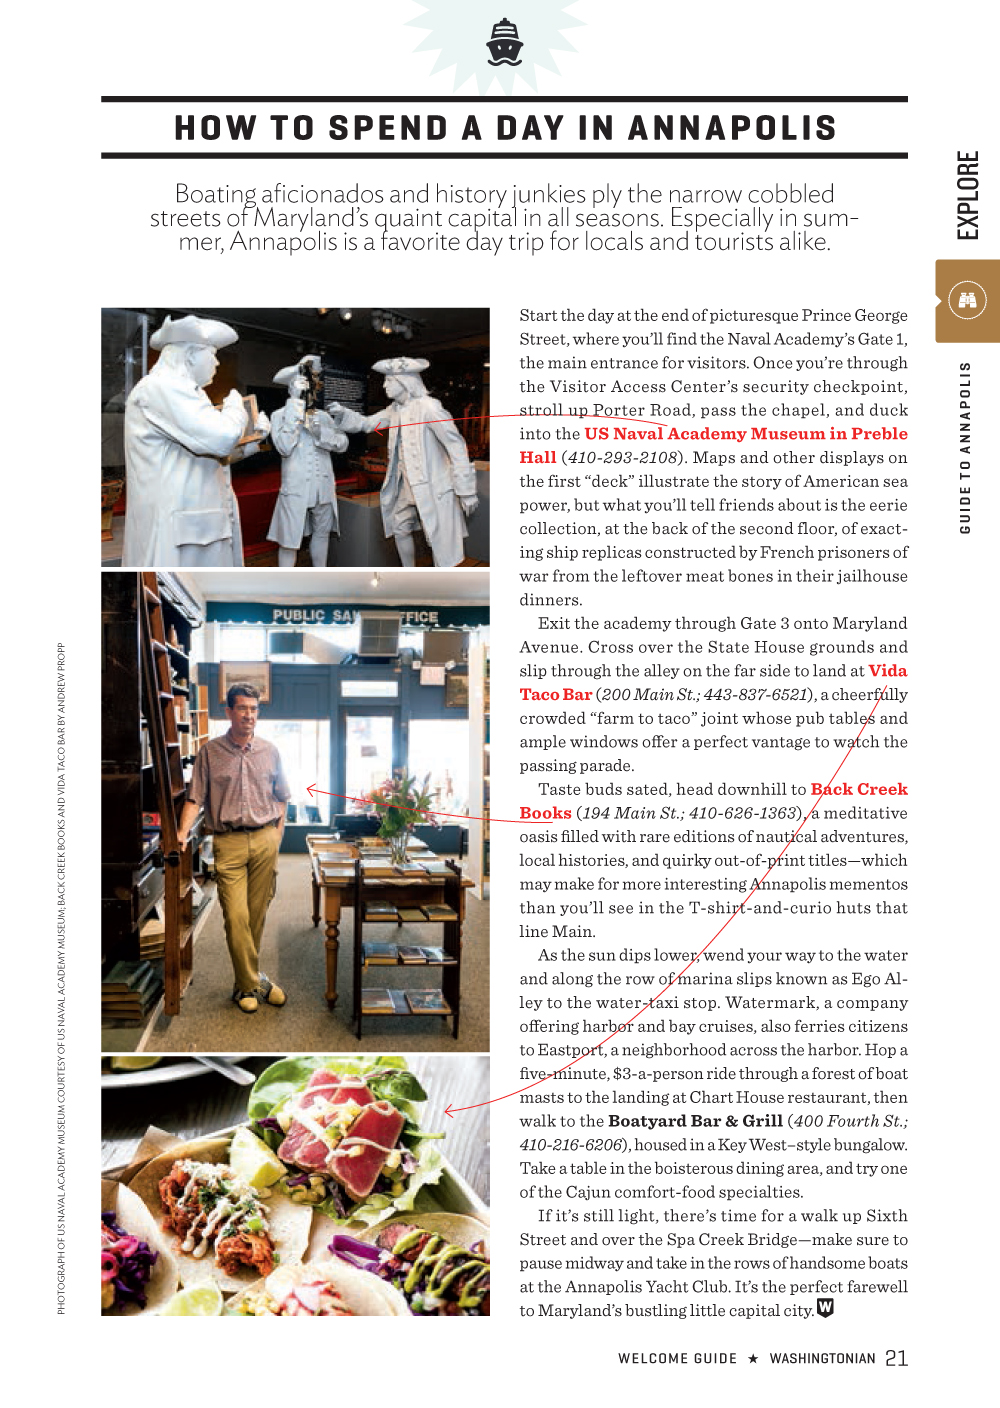 Boatyard Bar & Grill featured in the Washingtonian Welcome Guide